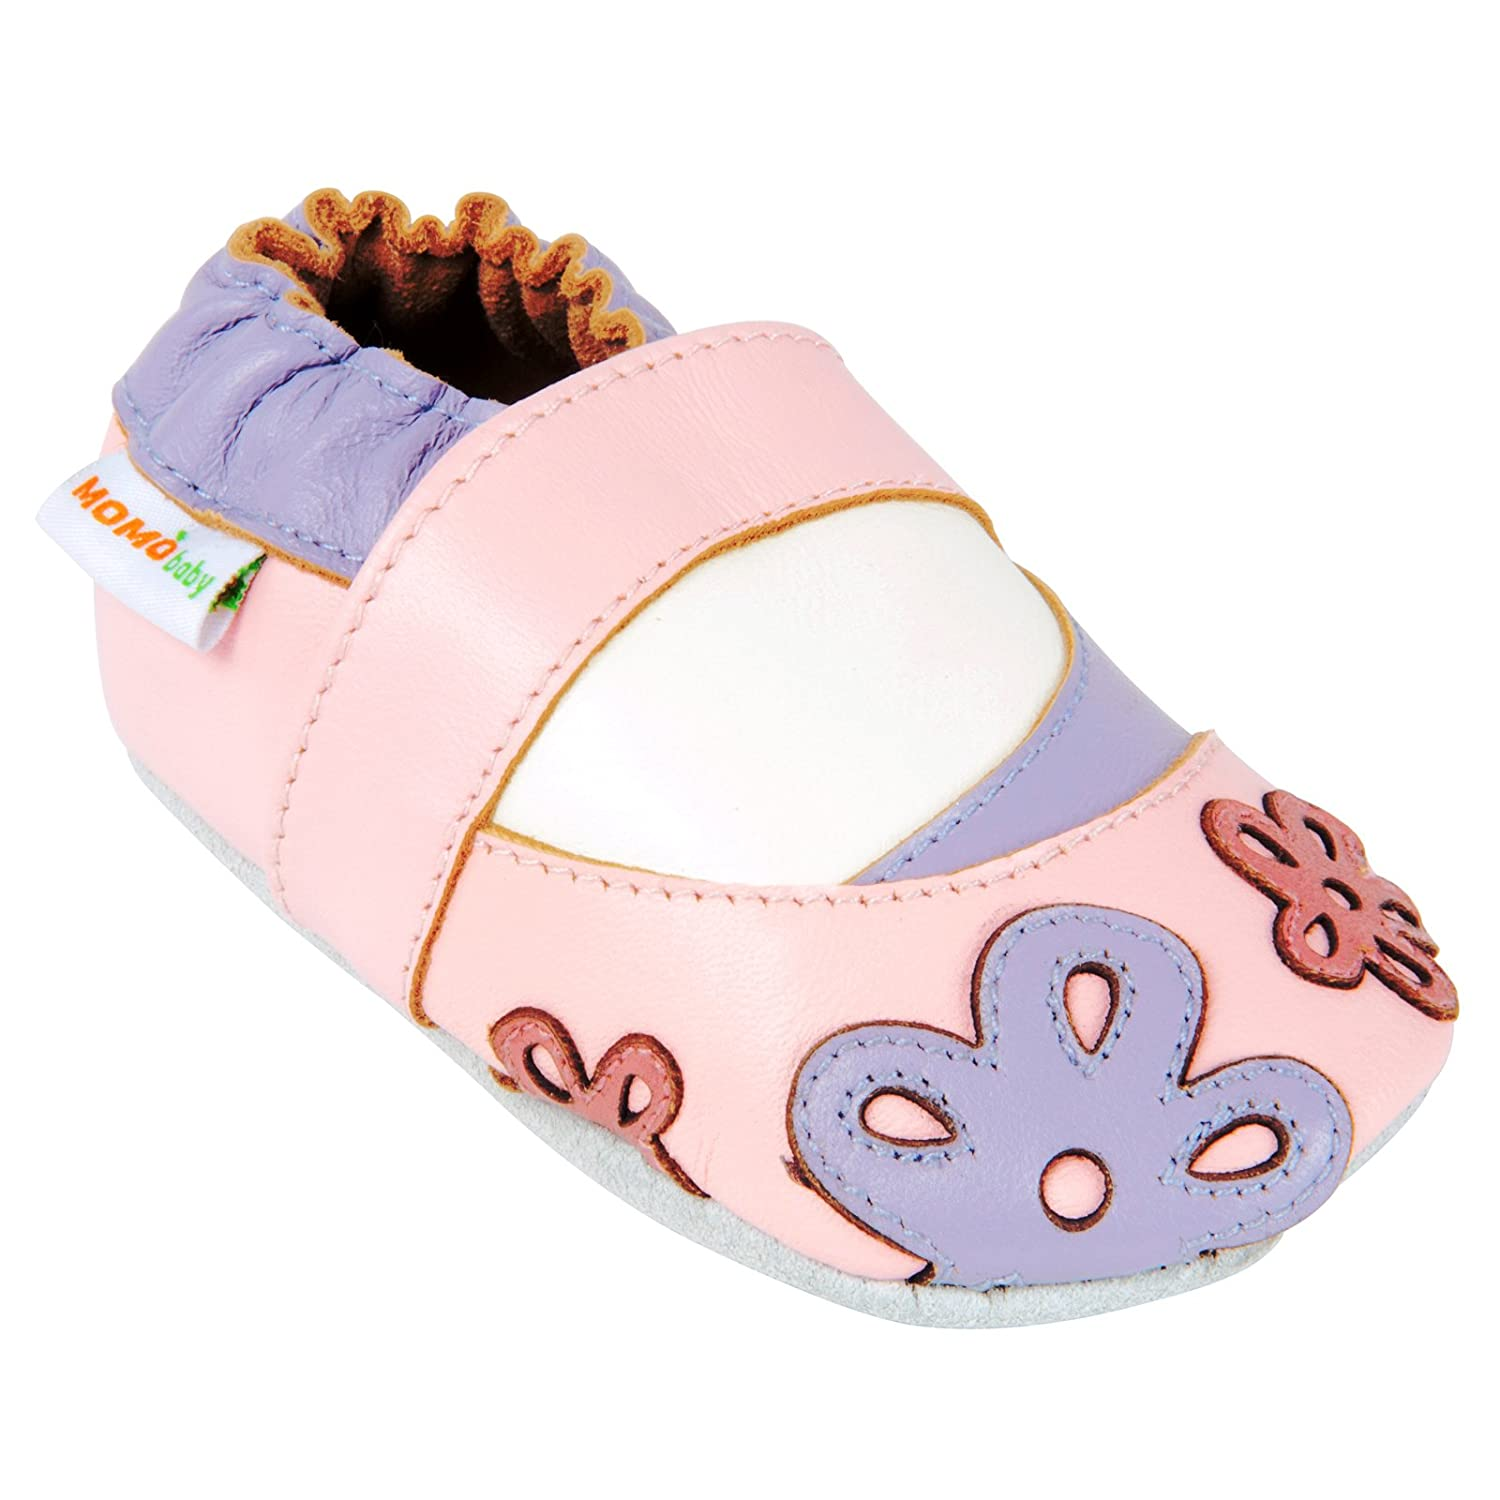 Momo Baby Girls Soft Sole Leather Shoes Scattered Daisy 4B1-331083-PNK-12M